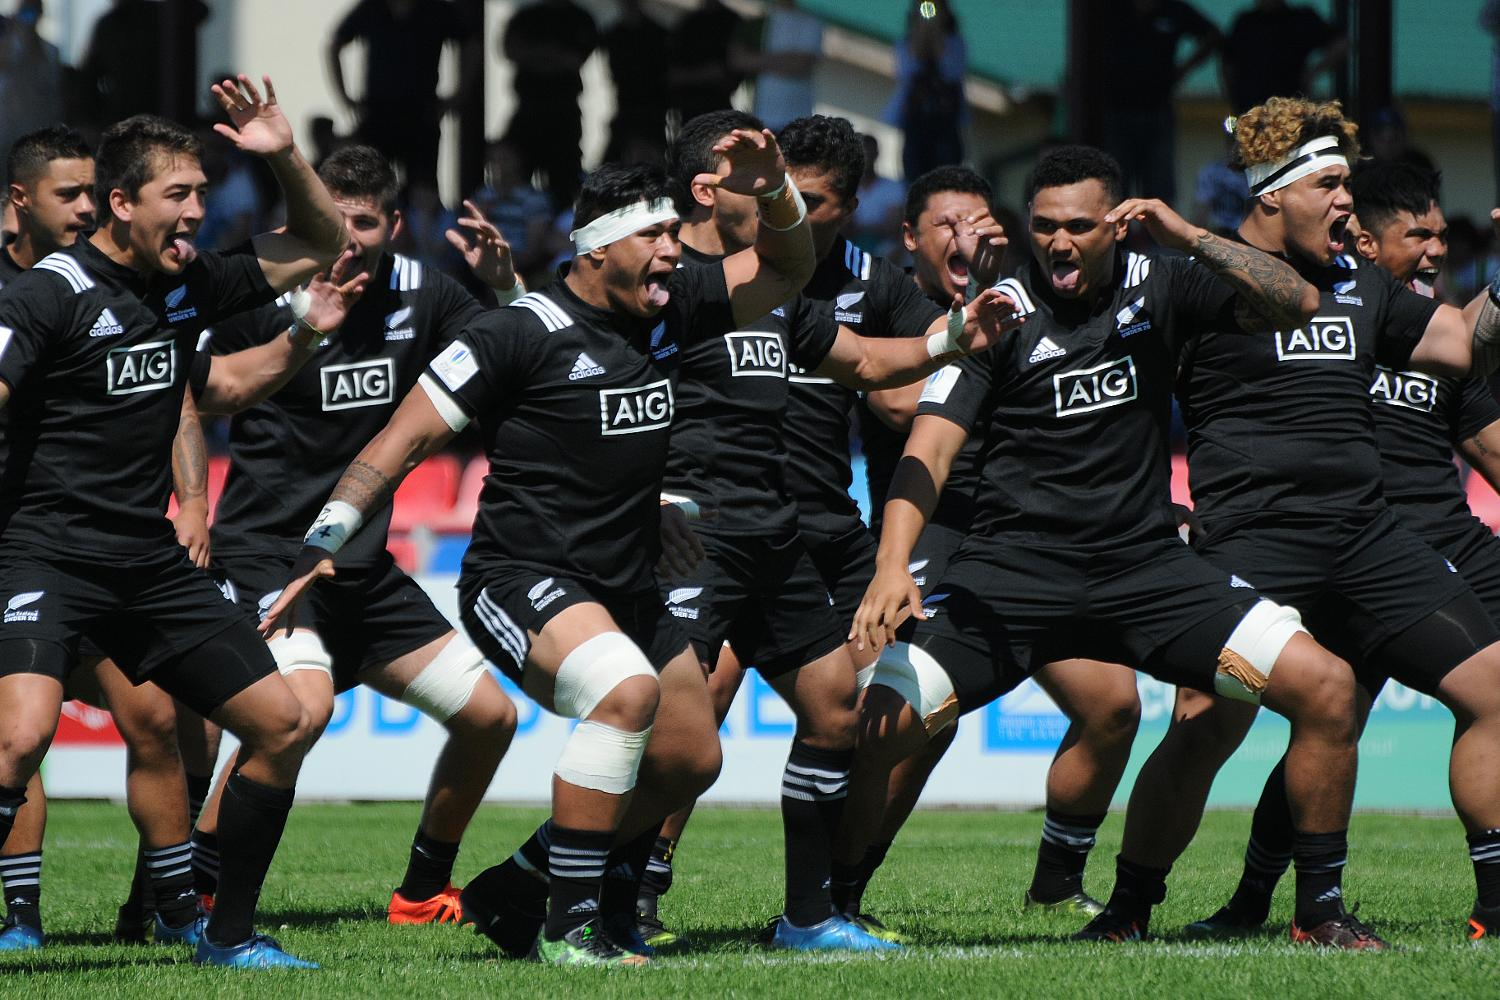 rugby world cup 2019 - photo #45